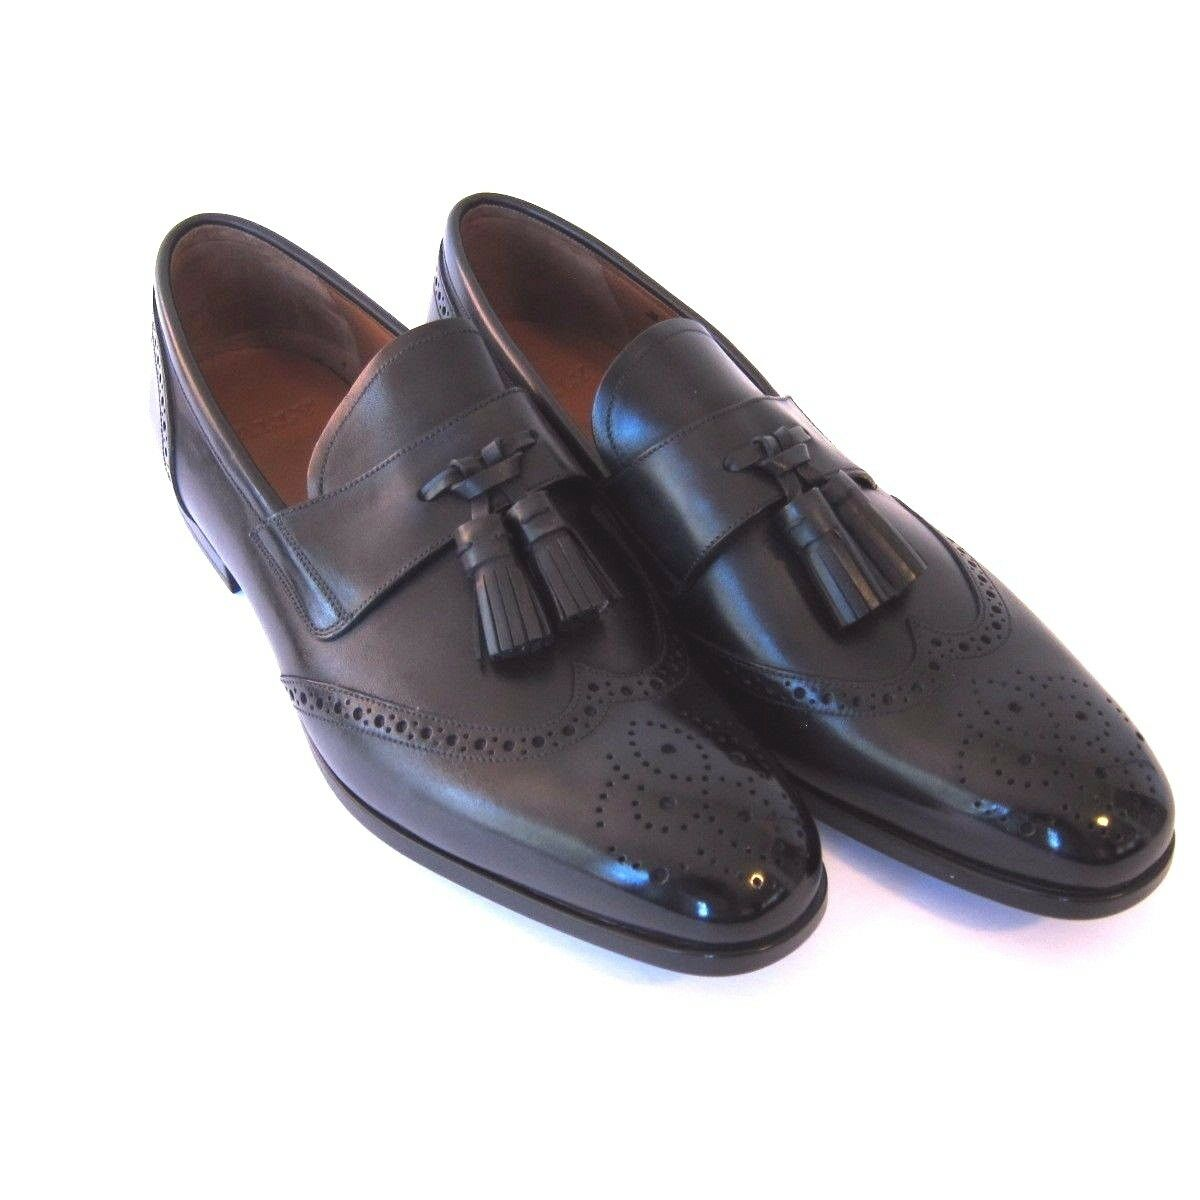 J-1831149 New Bally Lavent Black Washed Oxford Loafer Dress shoes Size 10.5